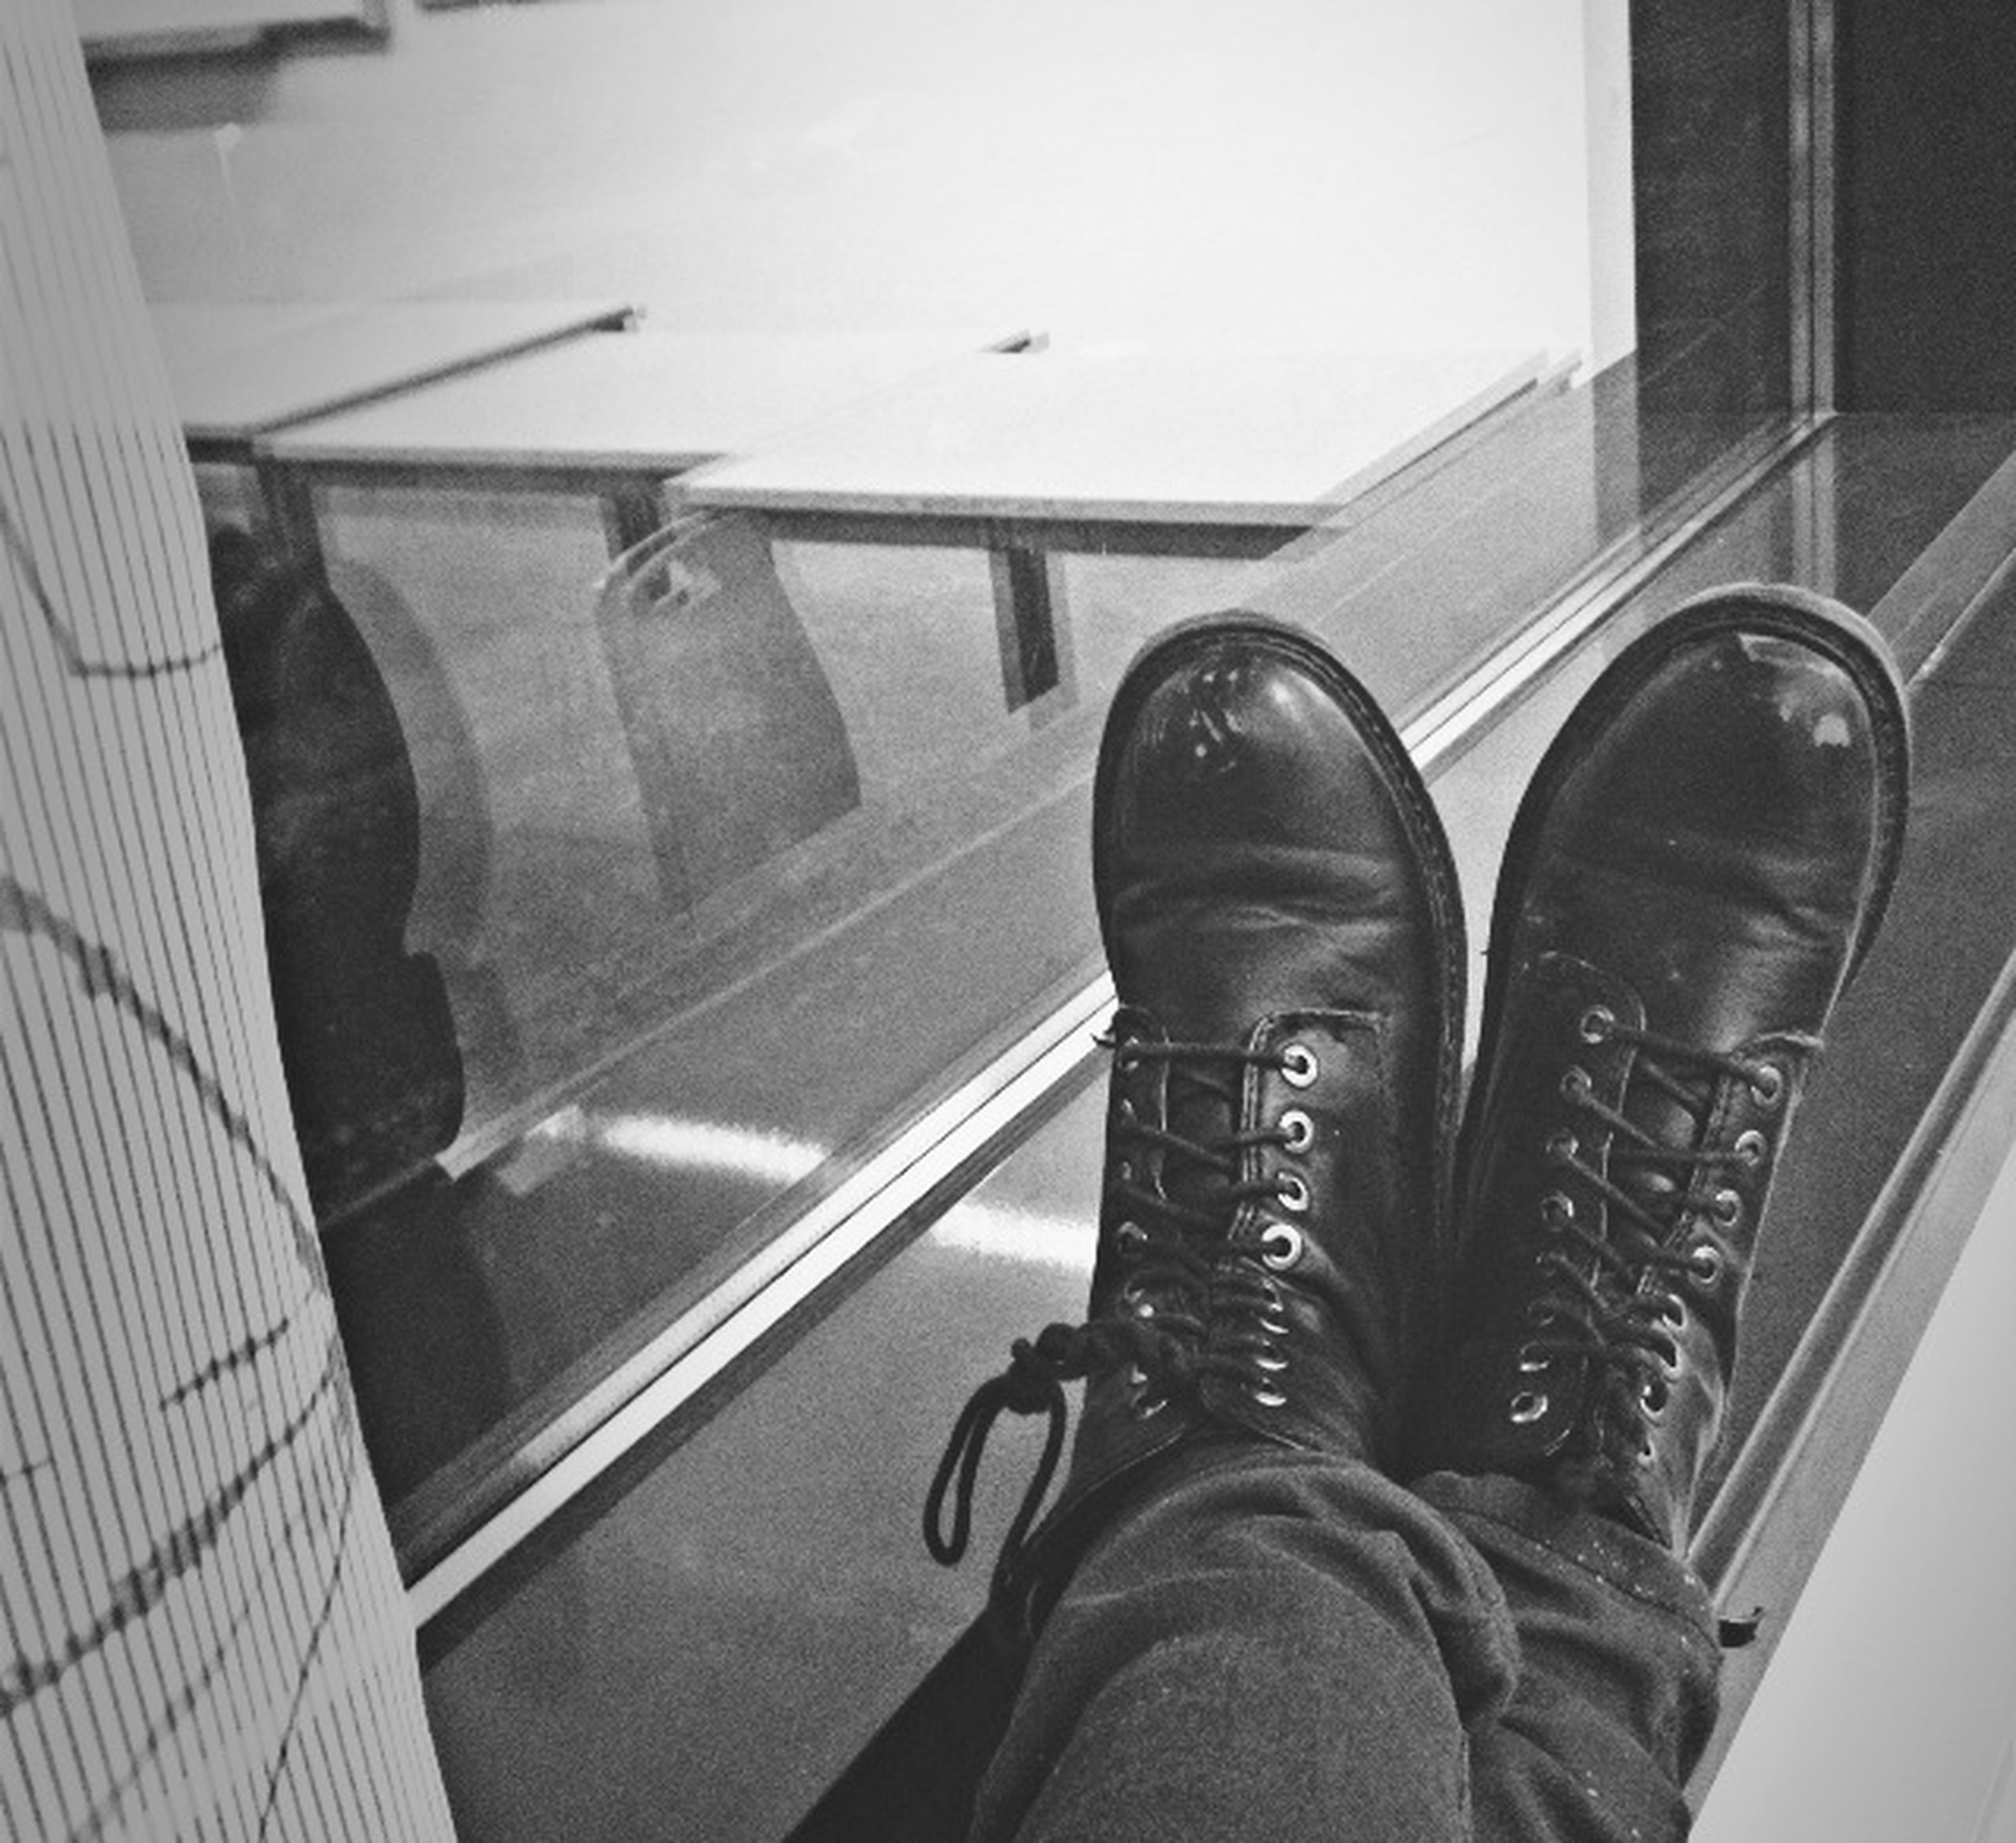 indoors, personal perspective, low section, person, shoe, part of, men, high angle view, lifestyles, footwear, architecture, unrecognizable person, human foot, glass - material, built structure, modern, standing